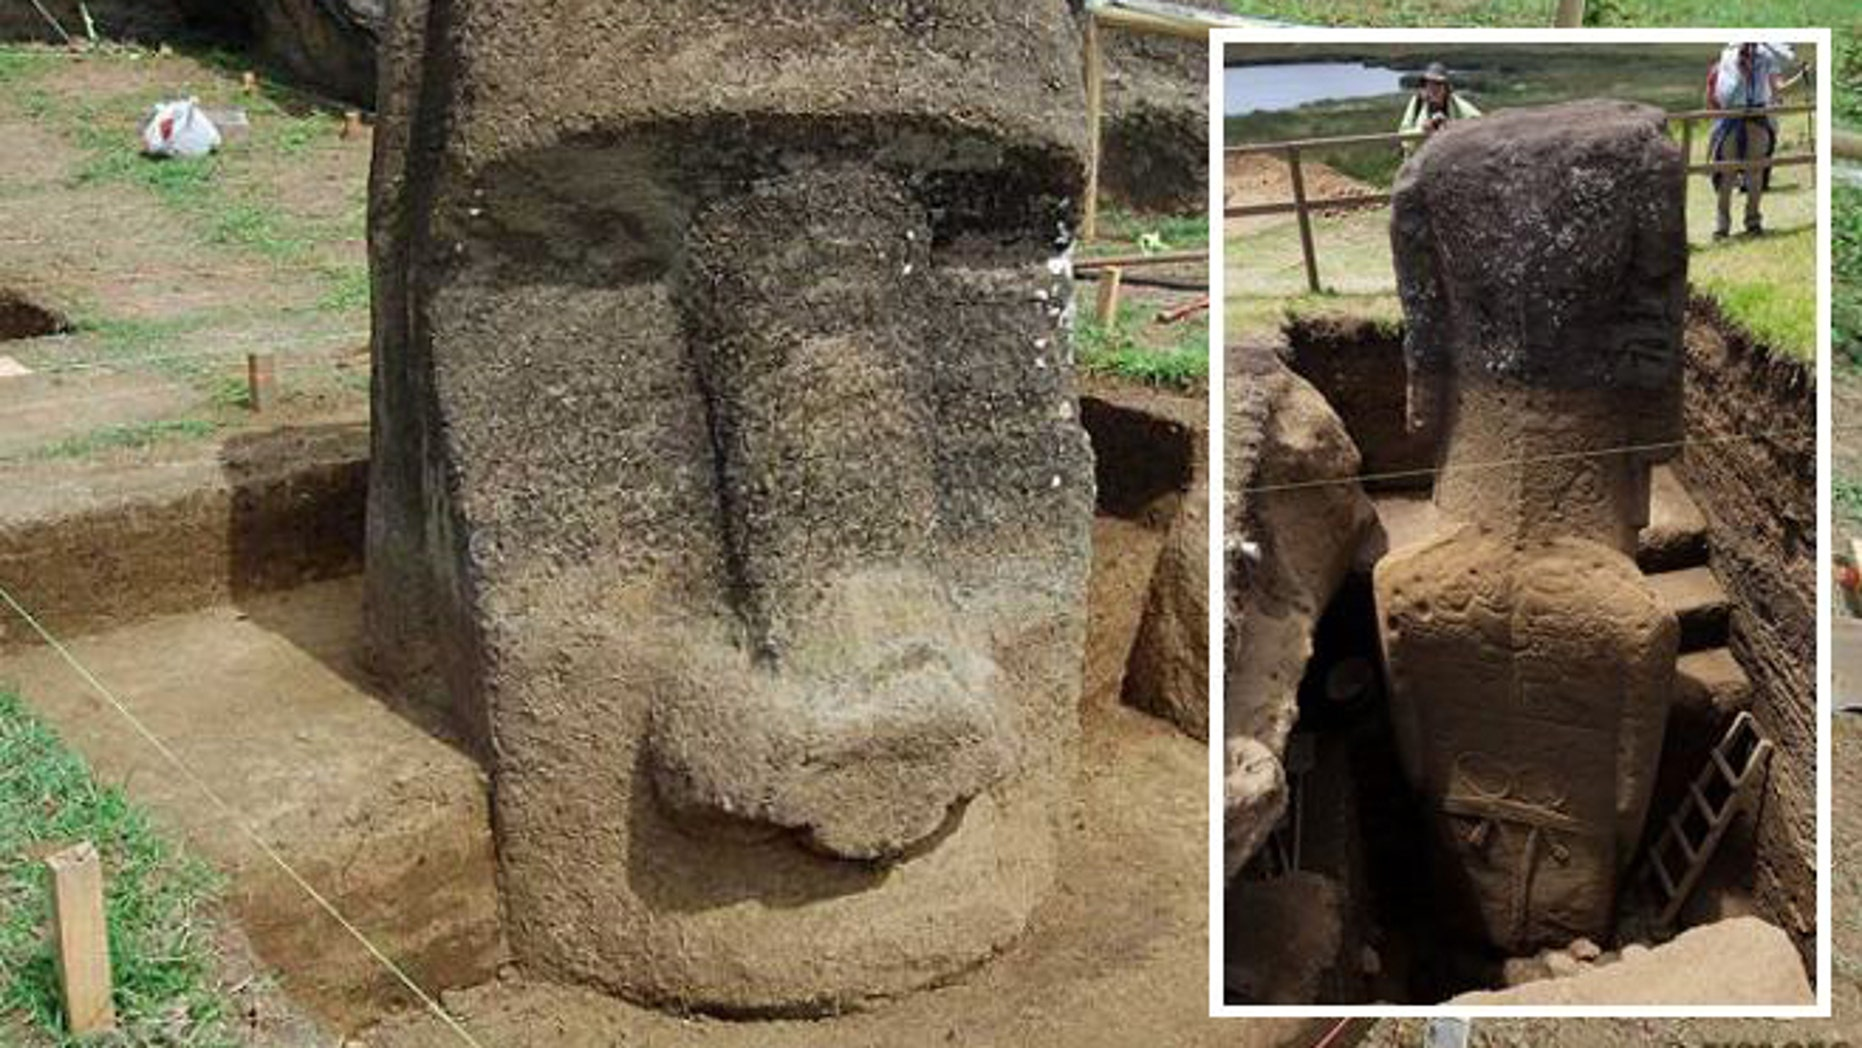 The first methodical investigation of the statues at Rapa Nui, which many think of as simple heads, reveals the complete figures buried over centuries by natural forces.